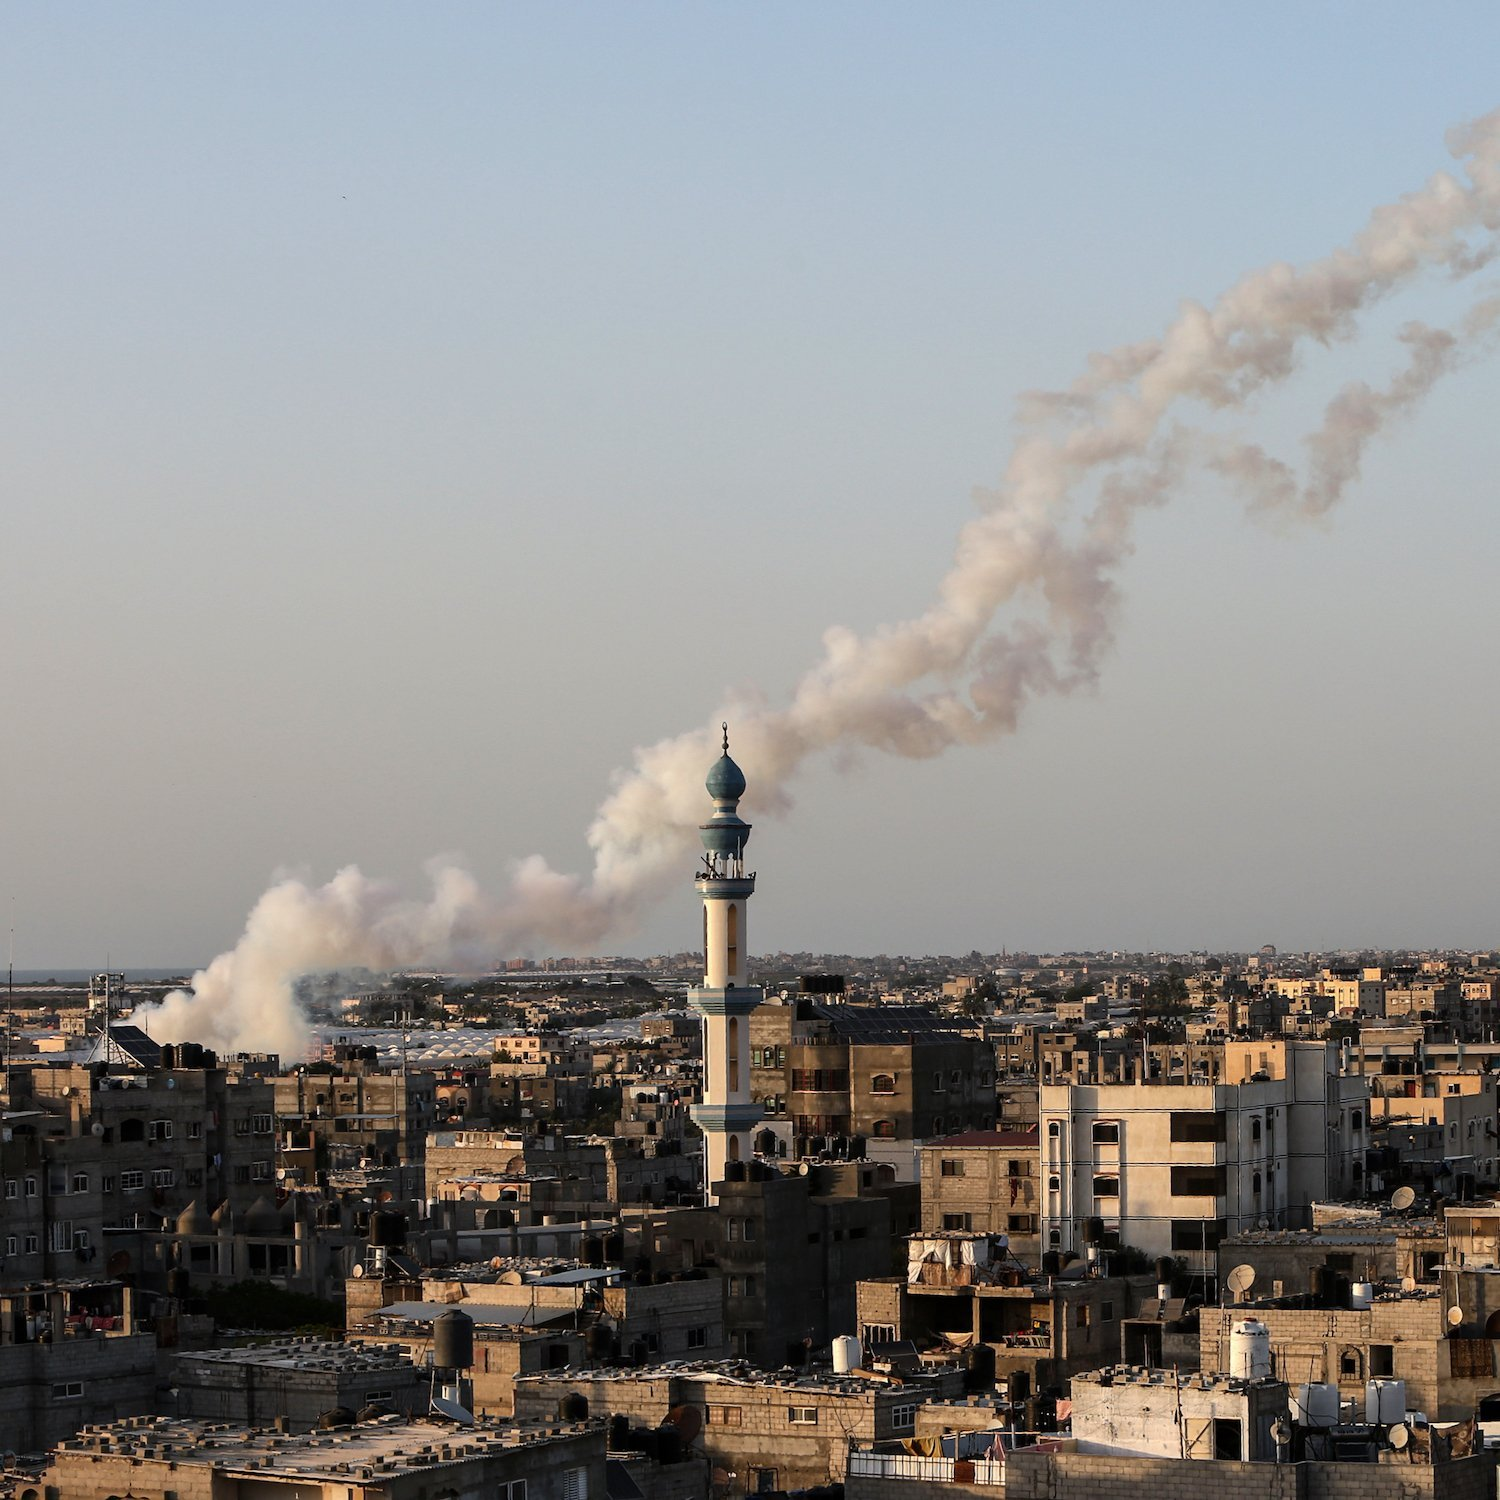 Listen: Israel-Hamas Ceasefire Takes Hold After 11 Days of Violence